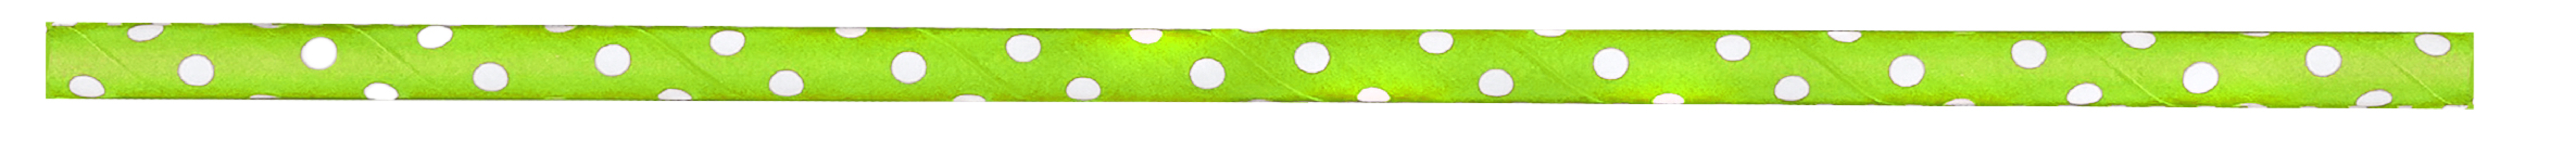 Durable Lime Green & White Polka Dot Paper Straws - 7.75 Inches